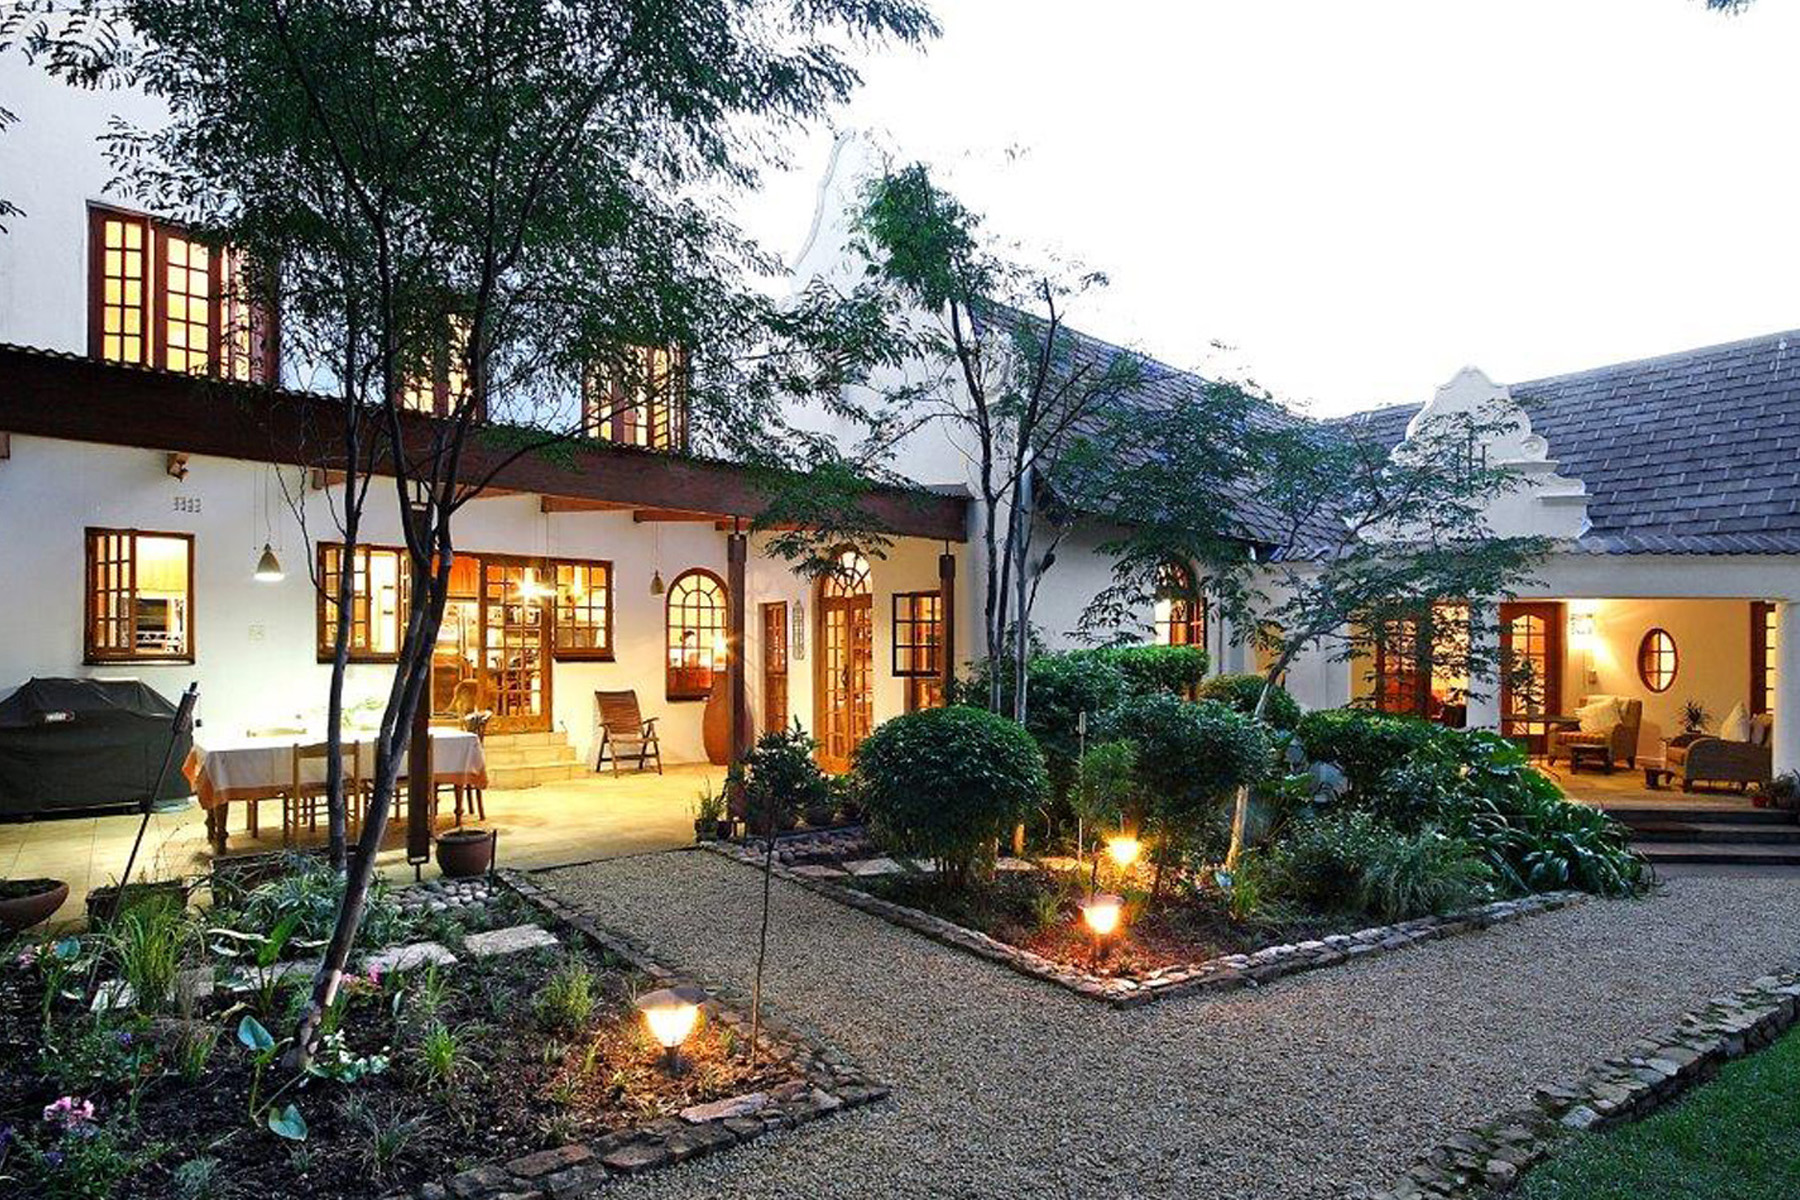 Single Family Home for Sale at Parkwood Johannesburg, Gauteng, 2193 South Africa